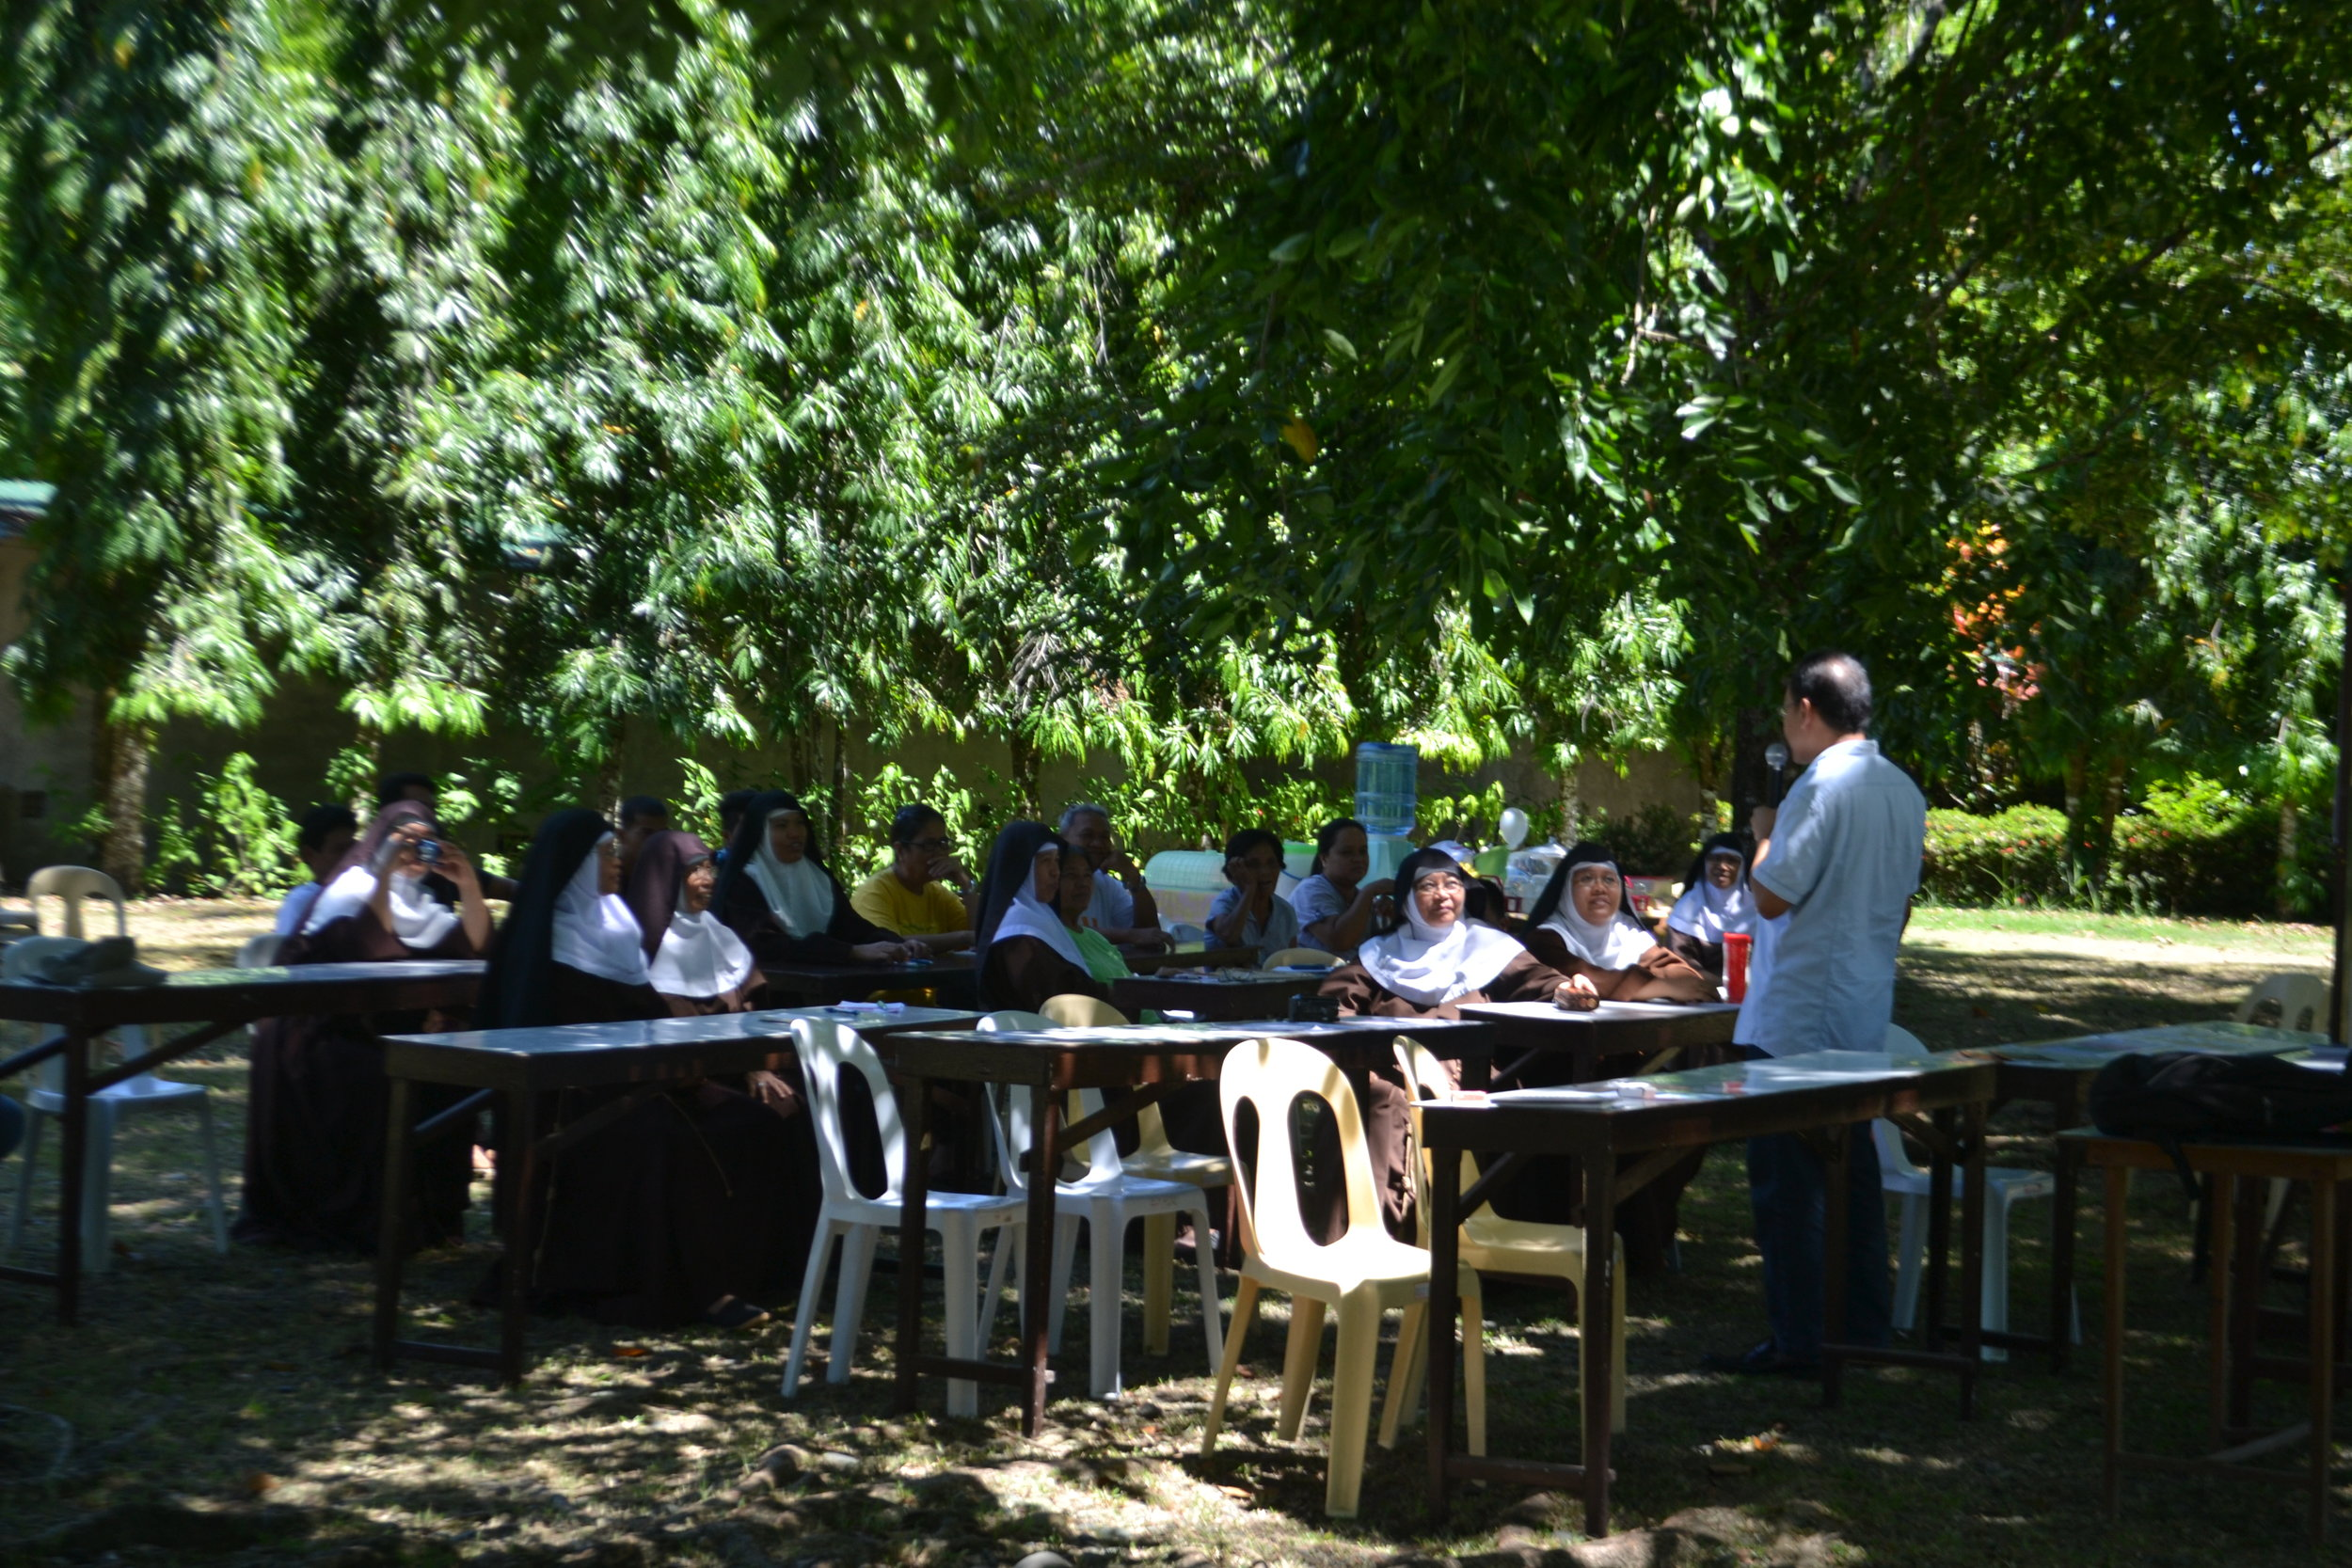 Even if the seminar venue is under the trees, it won't stop us from empowering you!